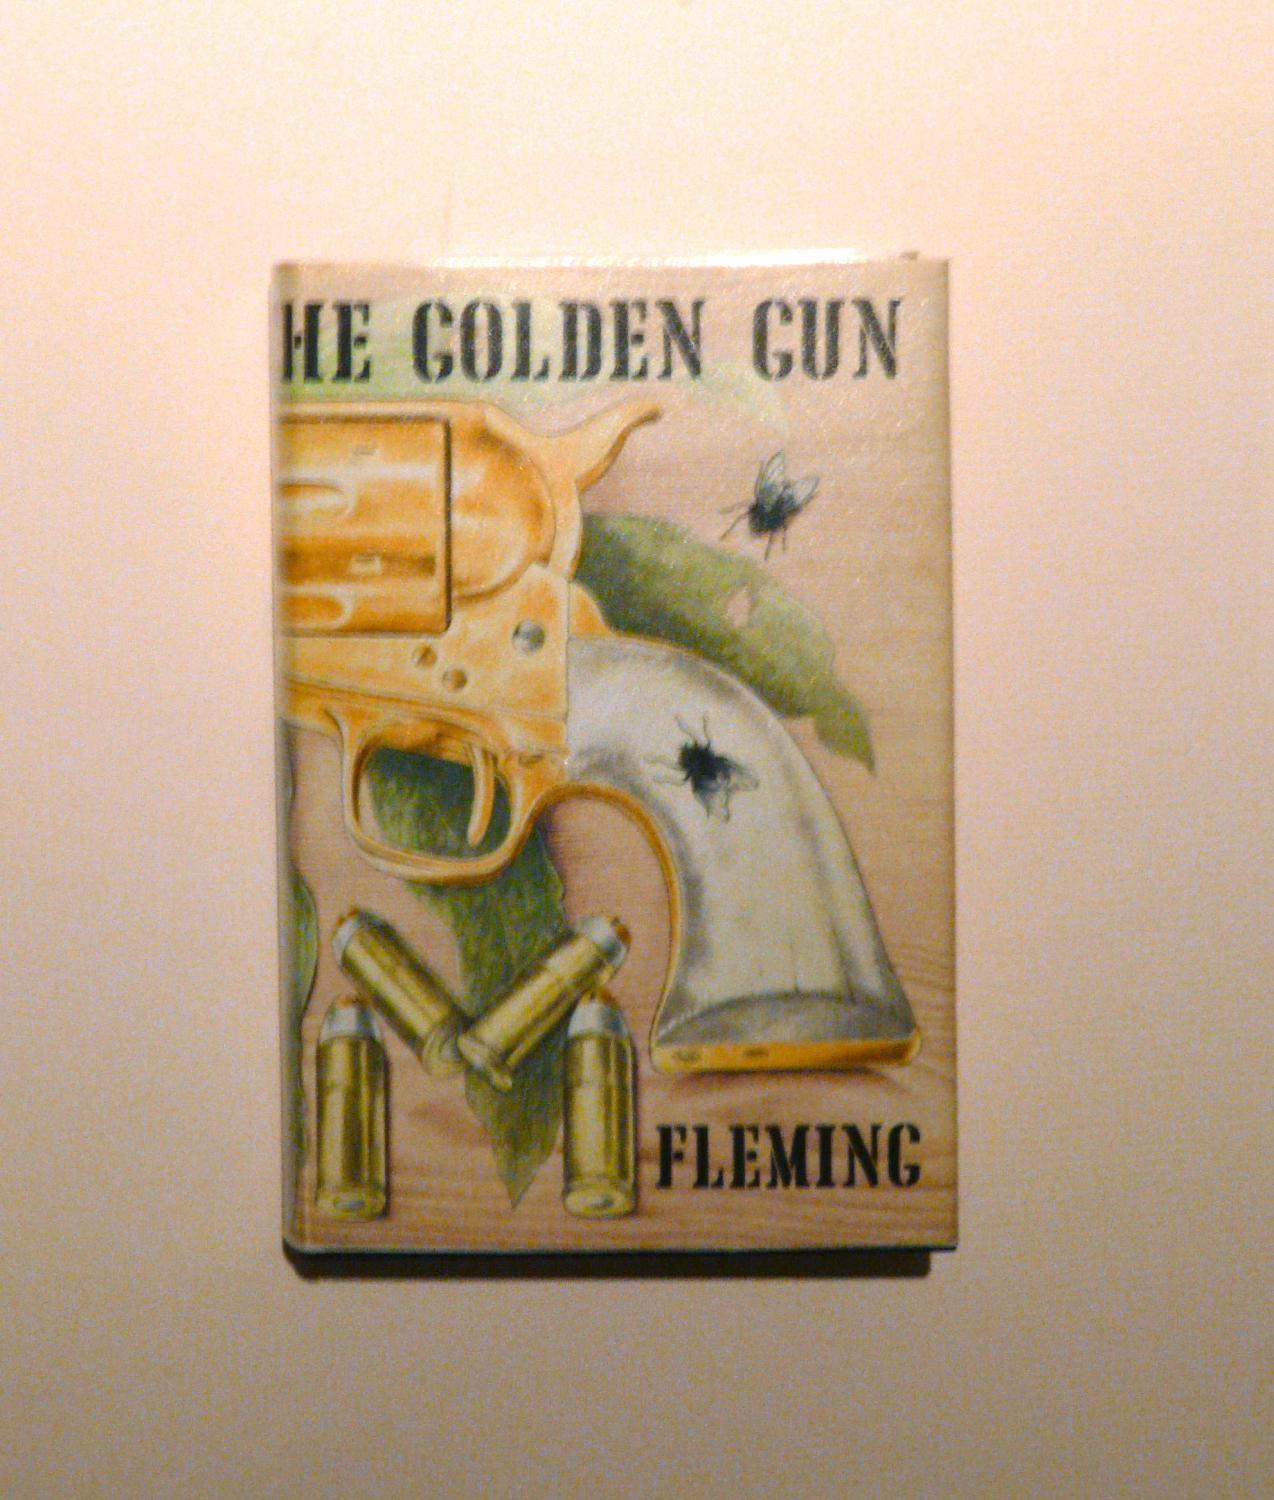 The Man with the Golden Gun: Ian Fleming